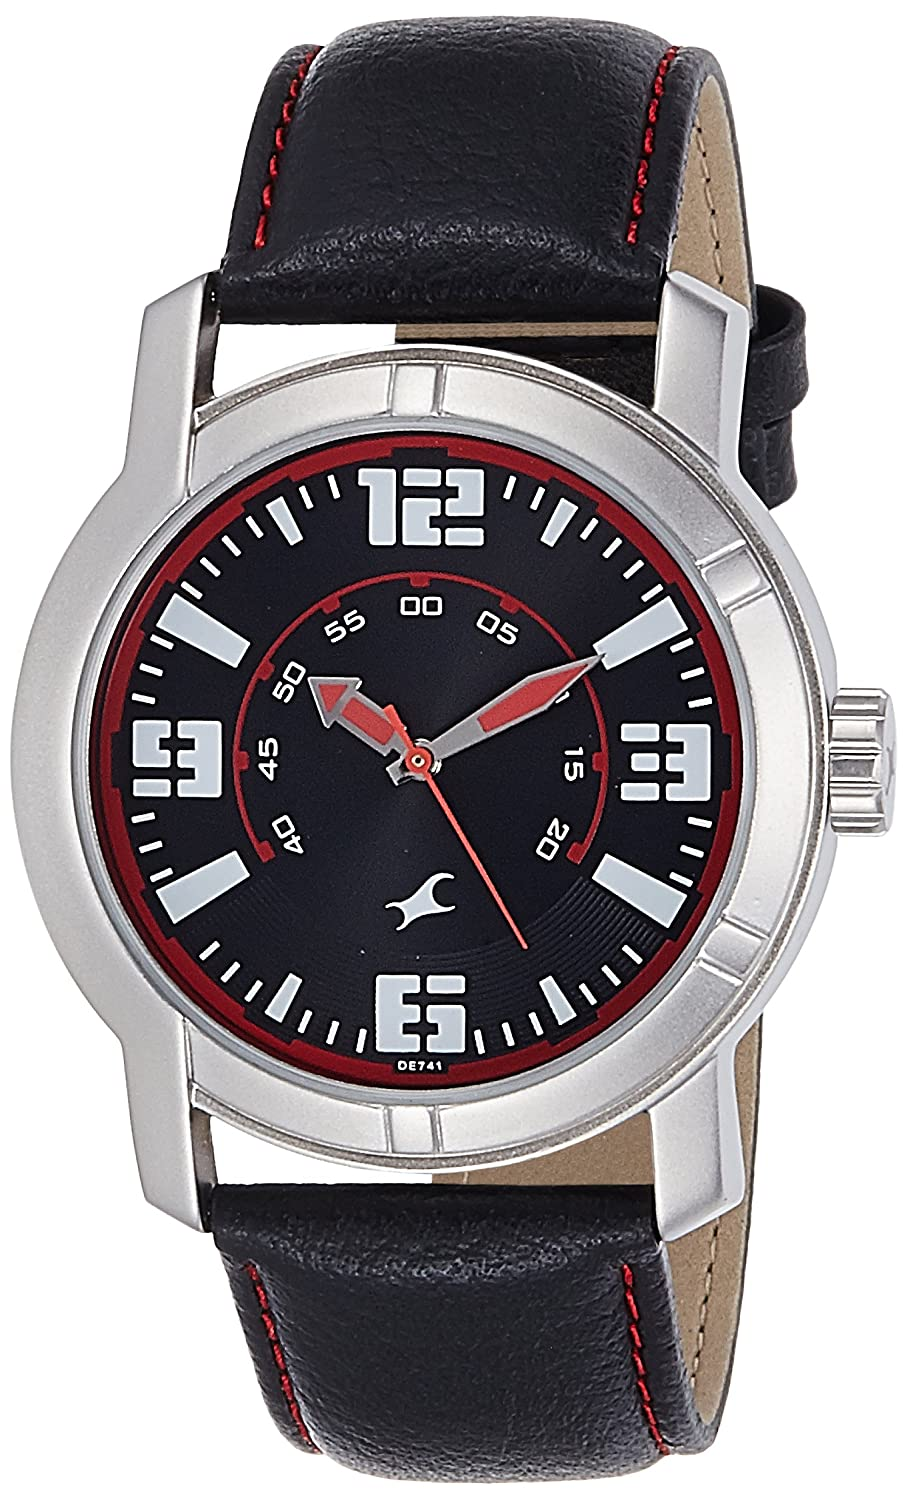 Fastrack Branded Watch for men under 2000 Rupees in India 2018